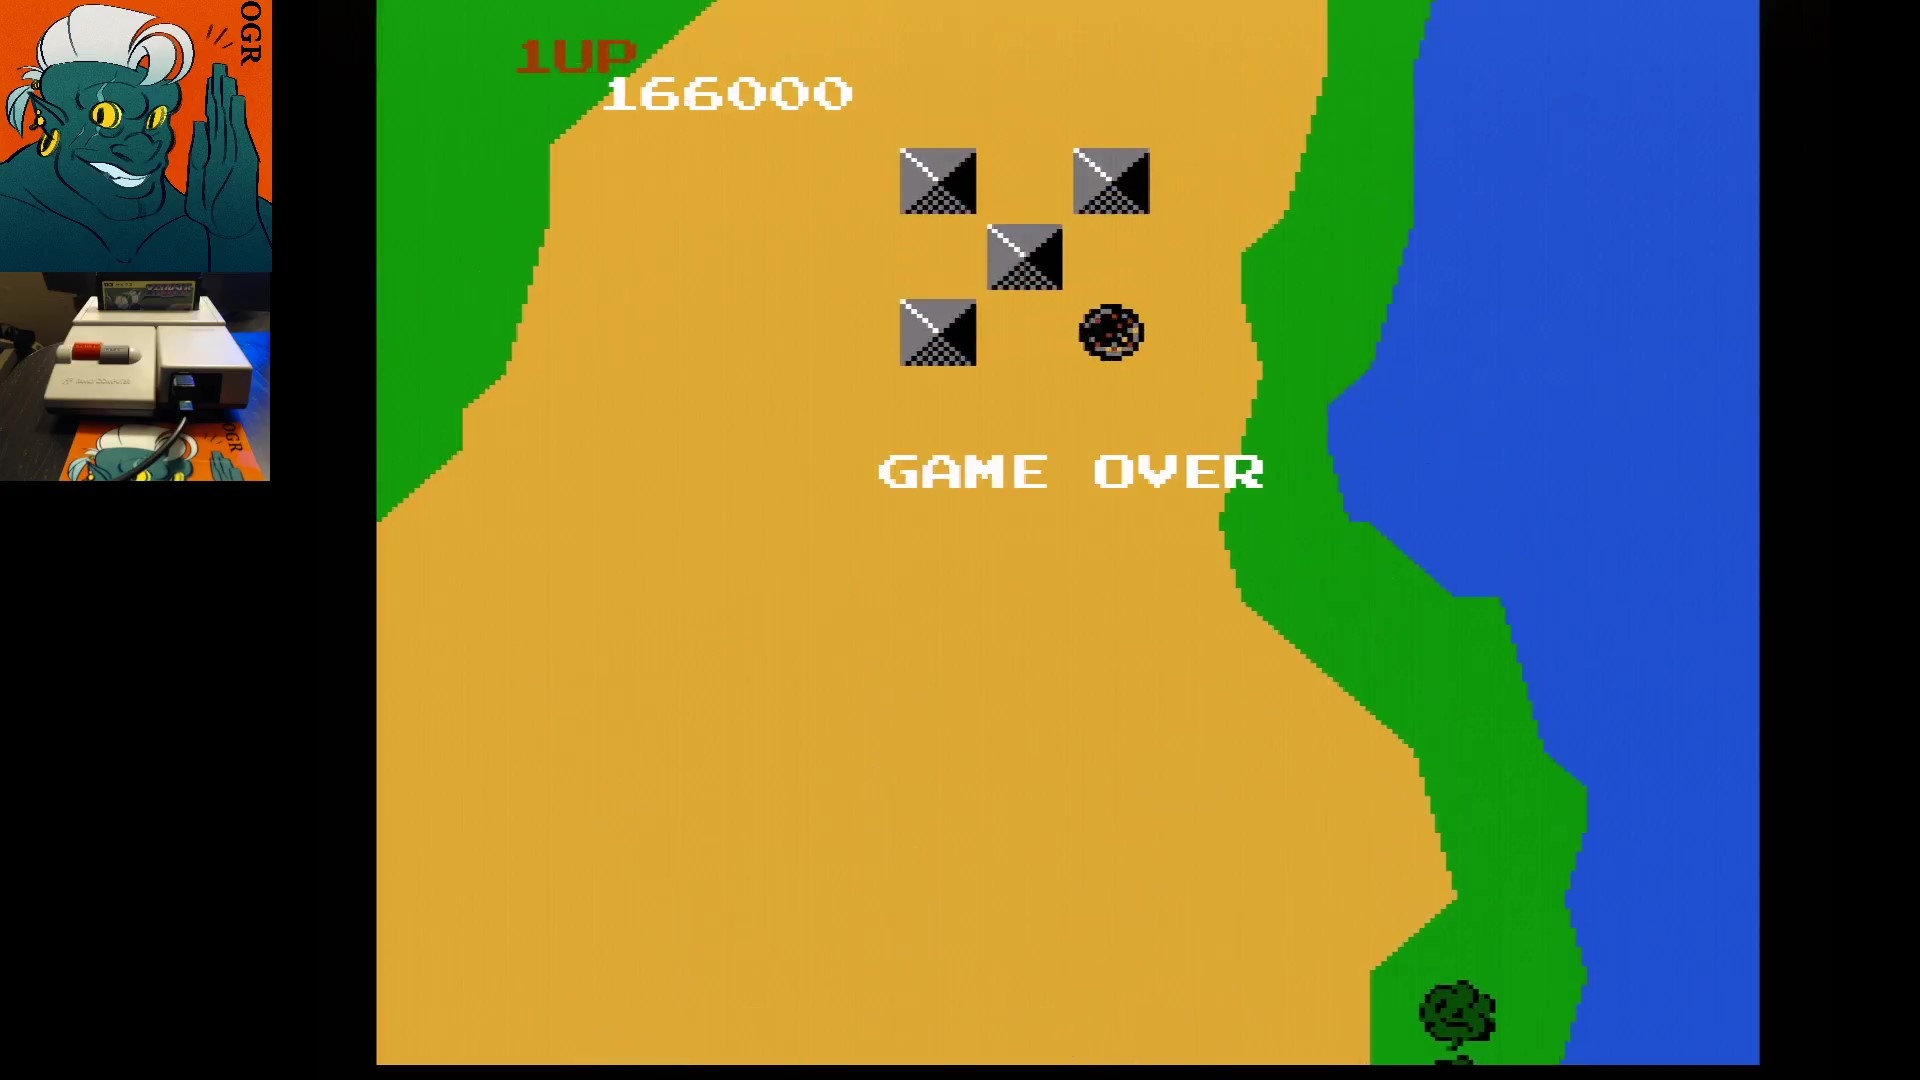 Xevious 166,000 points